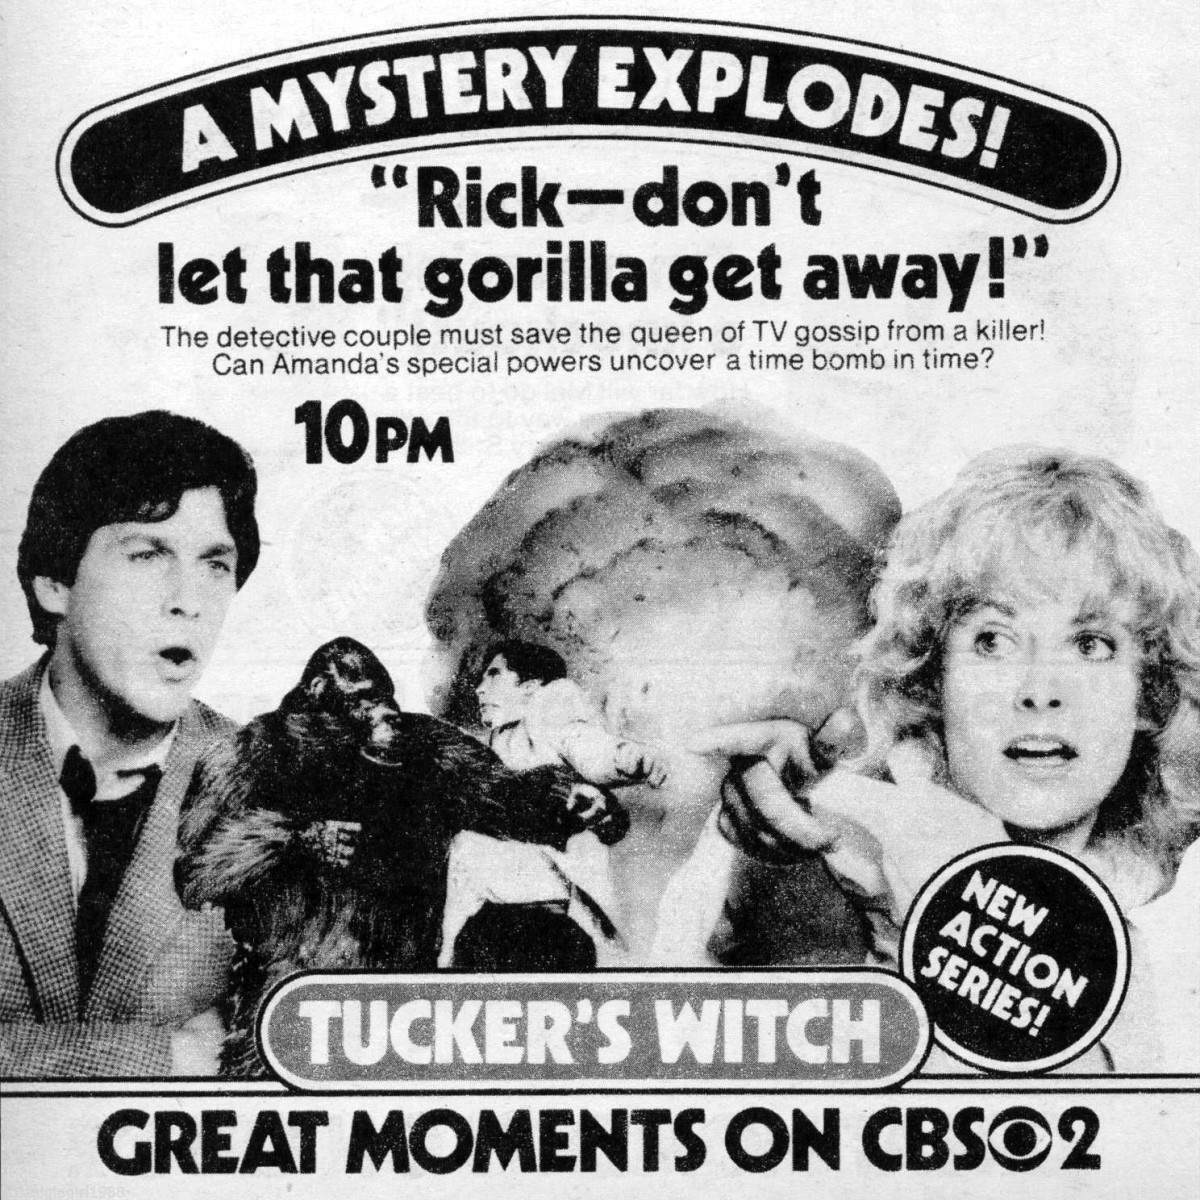 Vintage TV Guide ad for Tucker's Witch